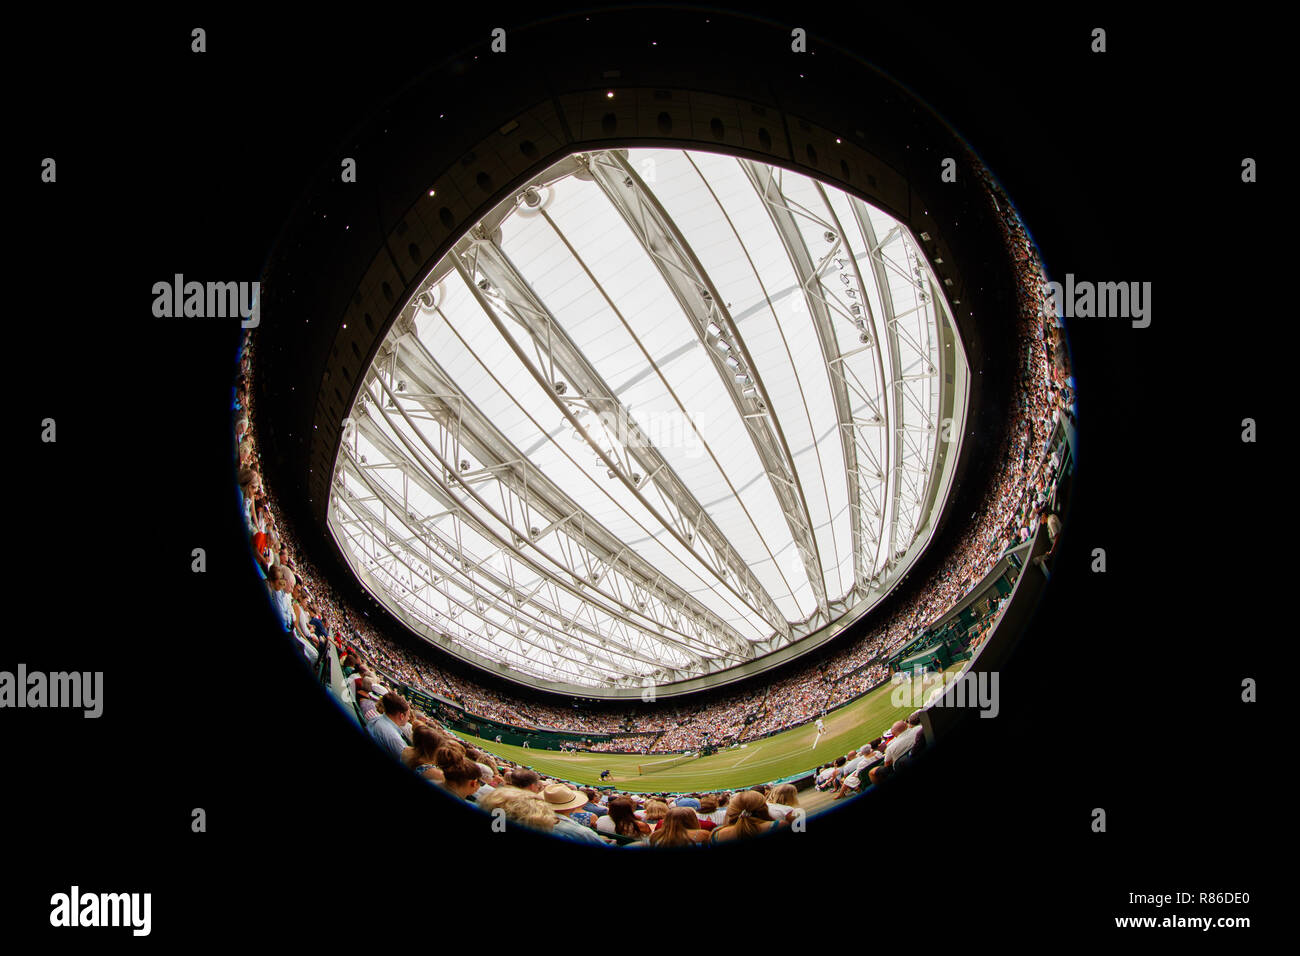 General wide view of Novak Djokovic of Serbia and Rafa Nadal of Spain on Centre Court during the Wimbledon Championships 2019 - Stock Image